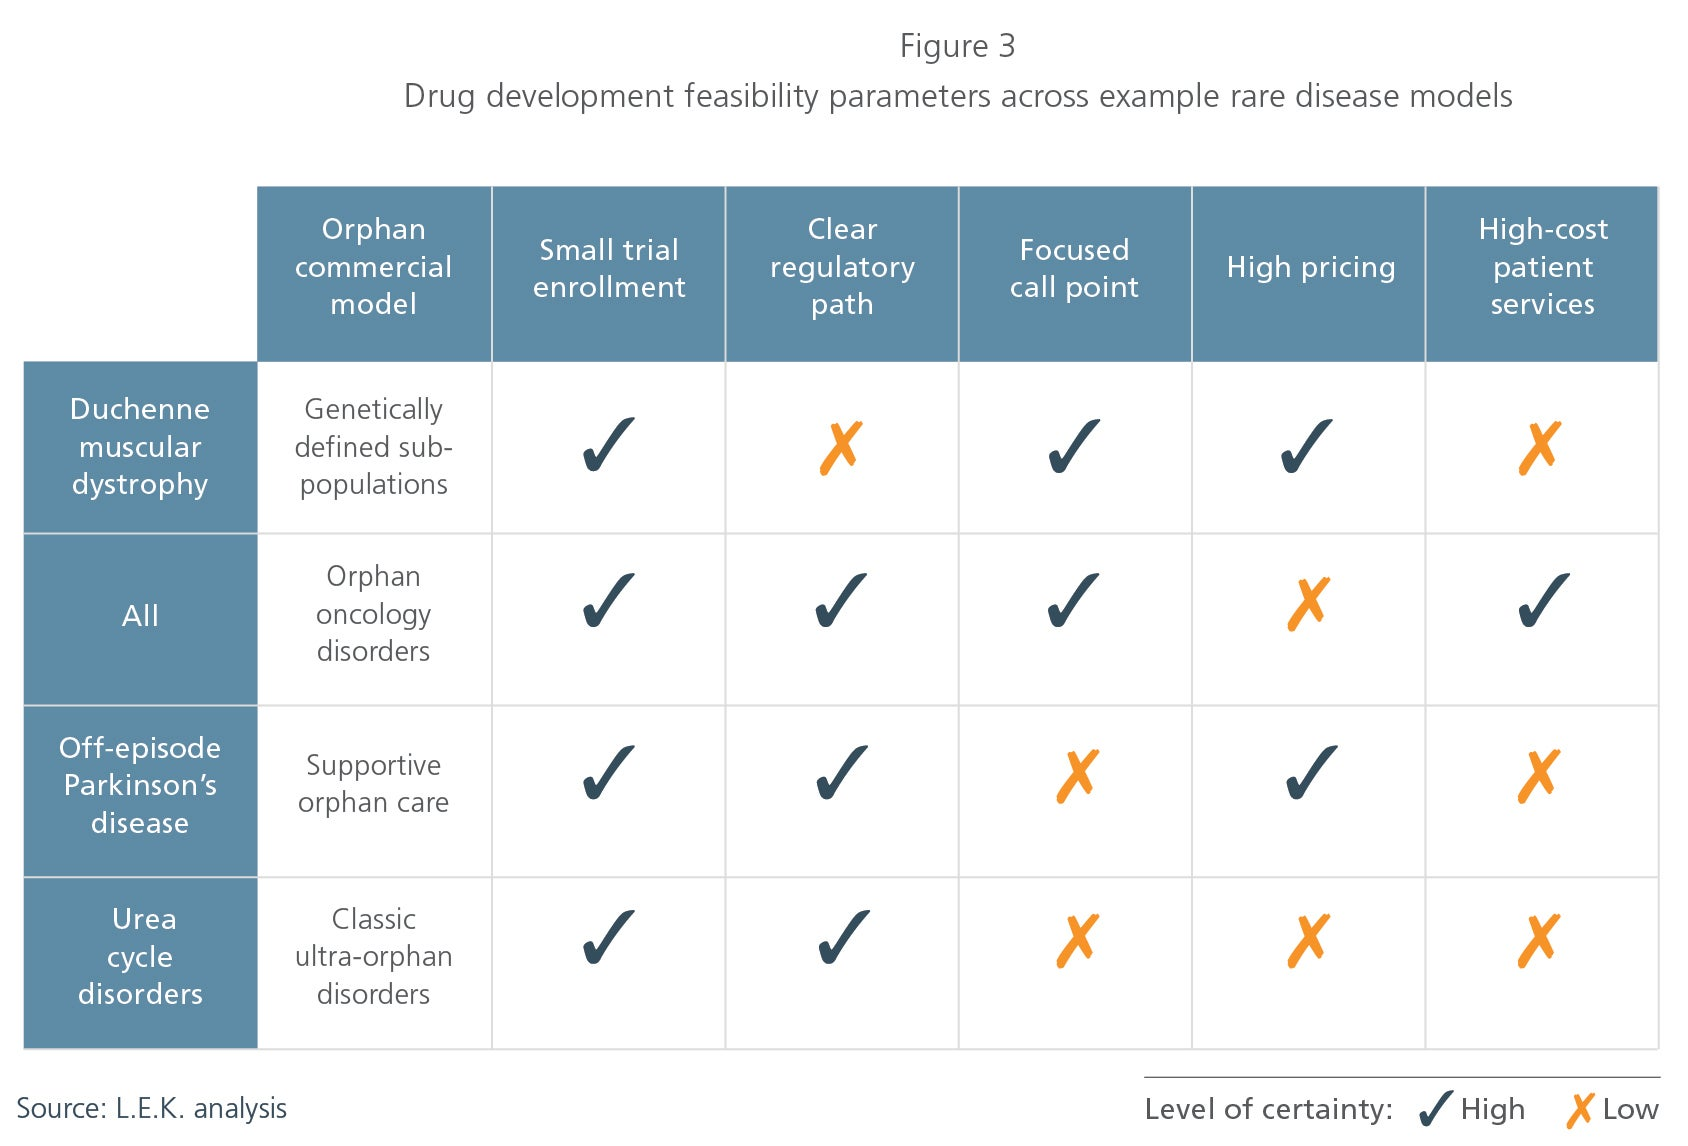 Drug development feasibility figure 3